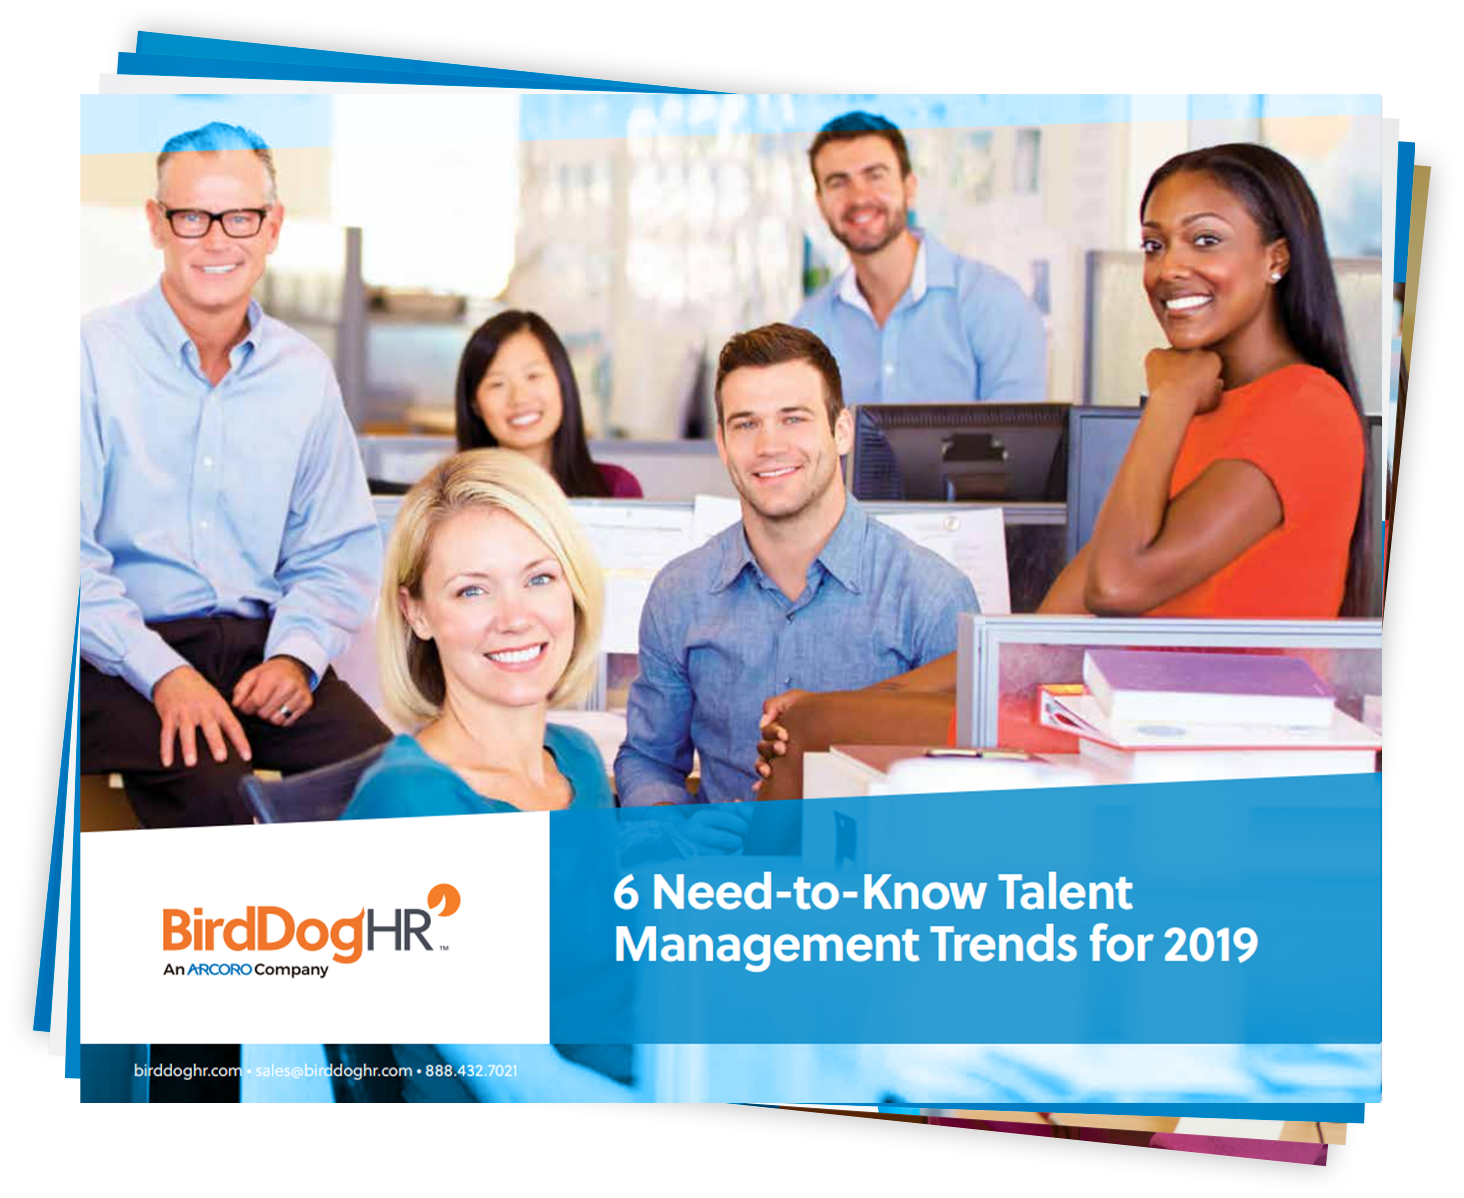 6 Need-to-Know Talent Management Trends for 2019 whitepaper